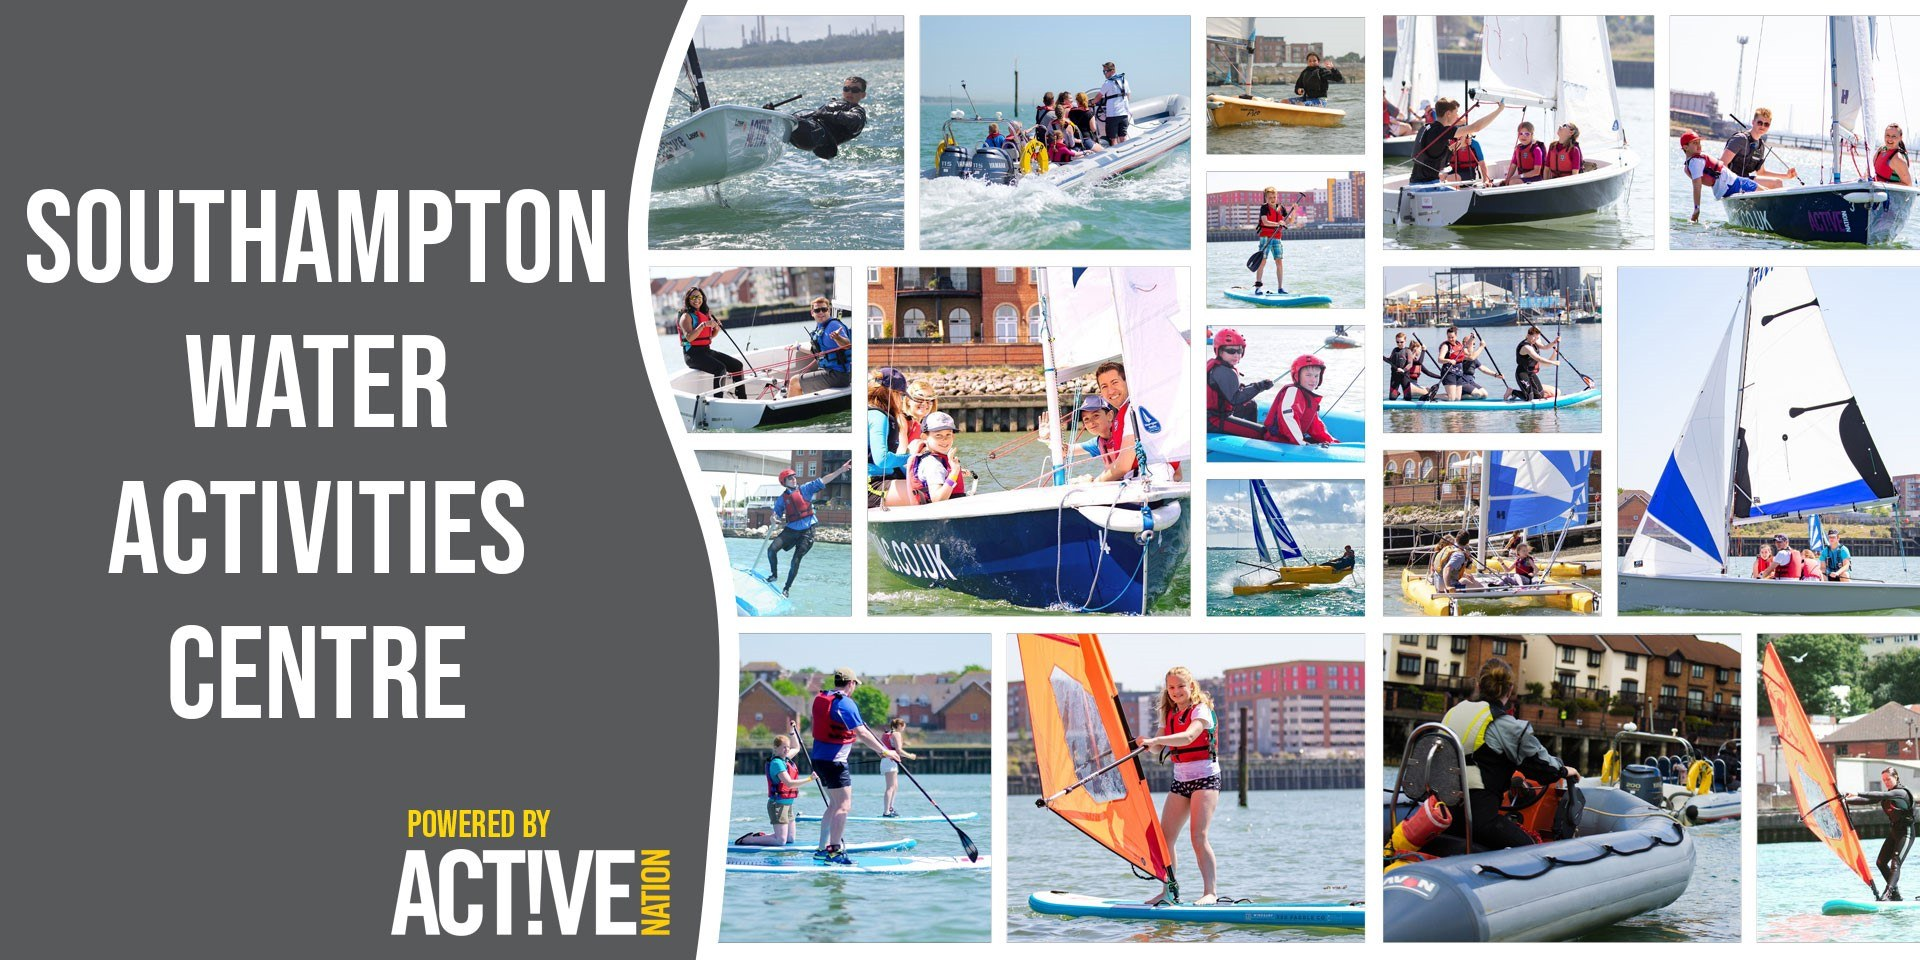 Southampton Water Activities Centre